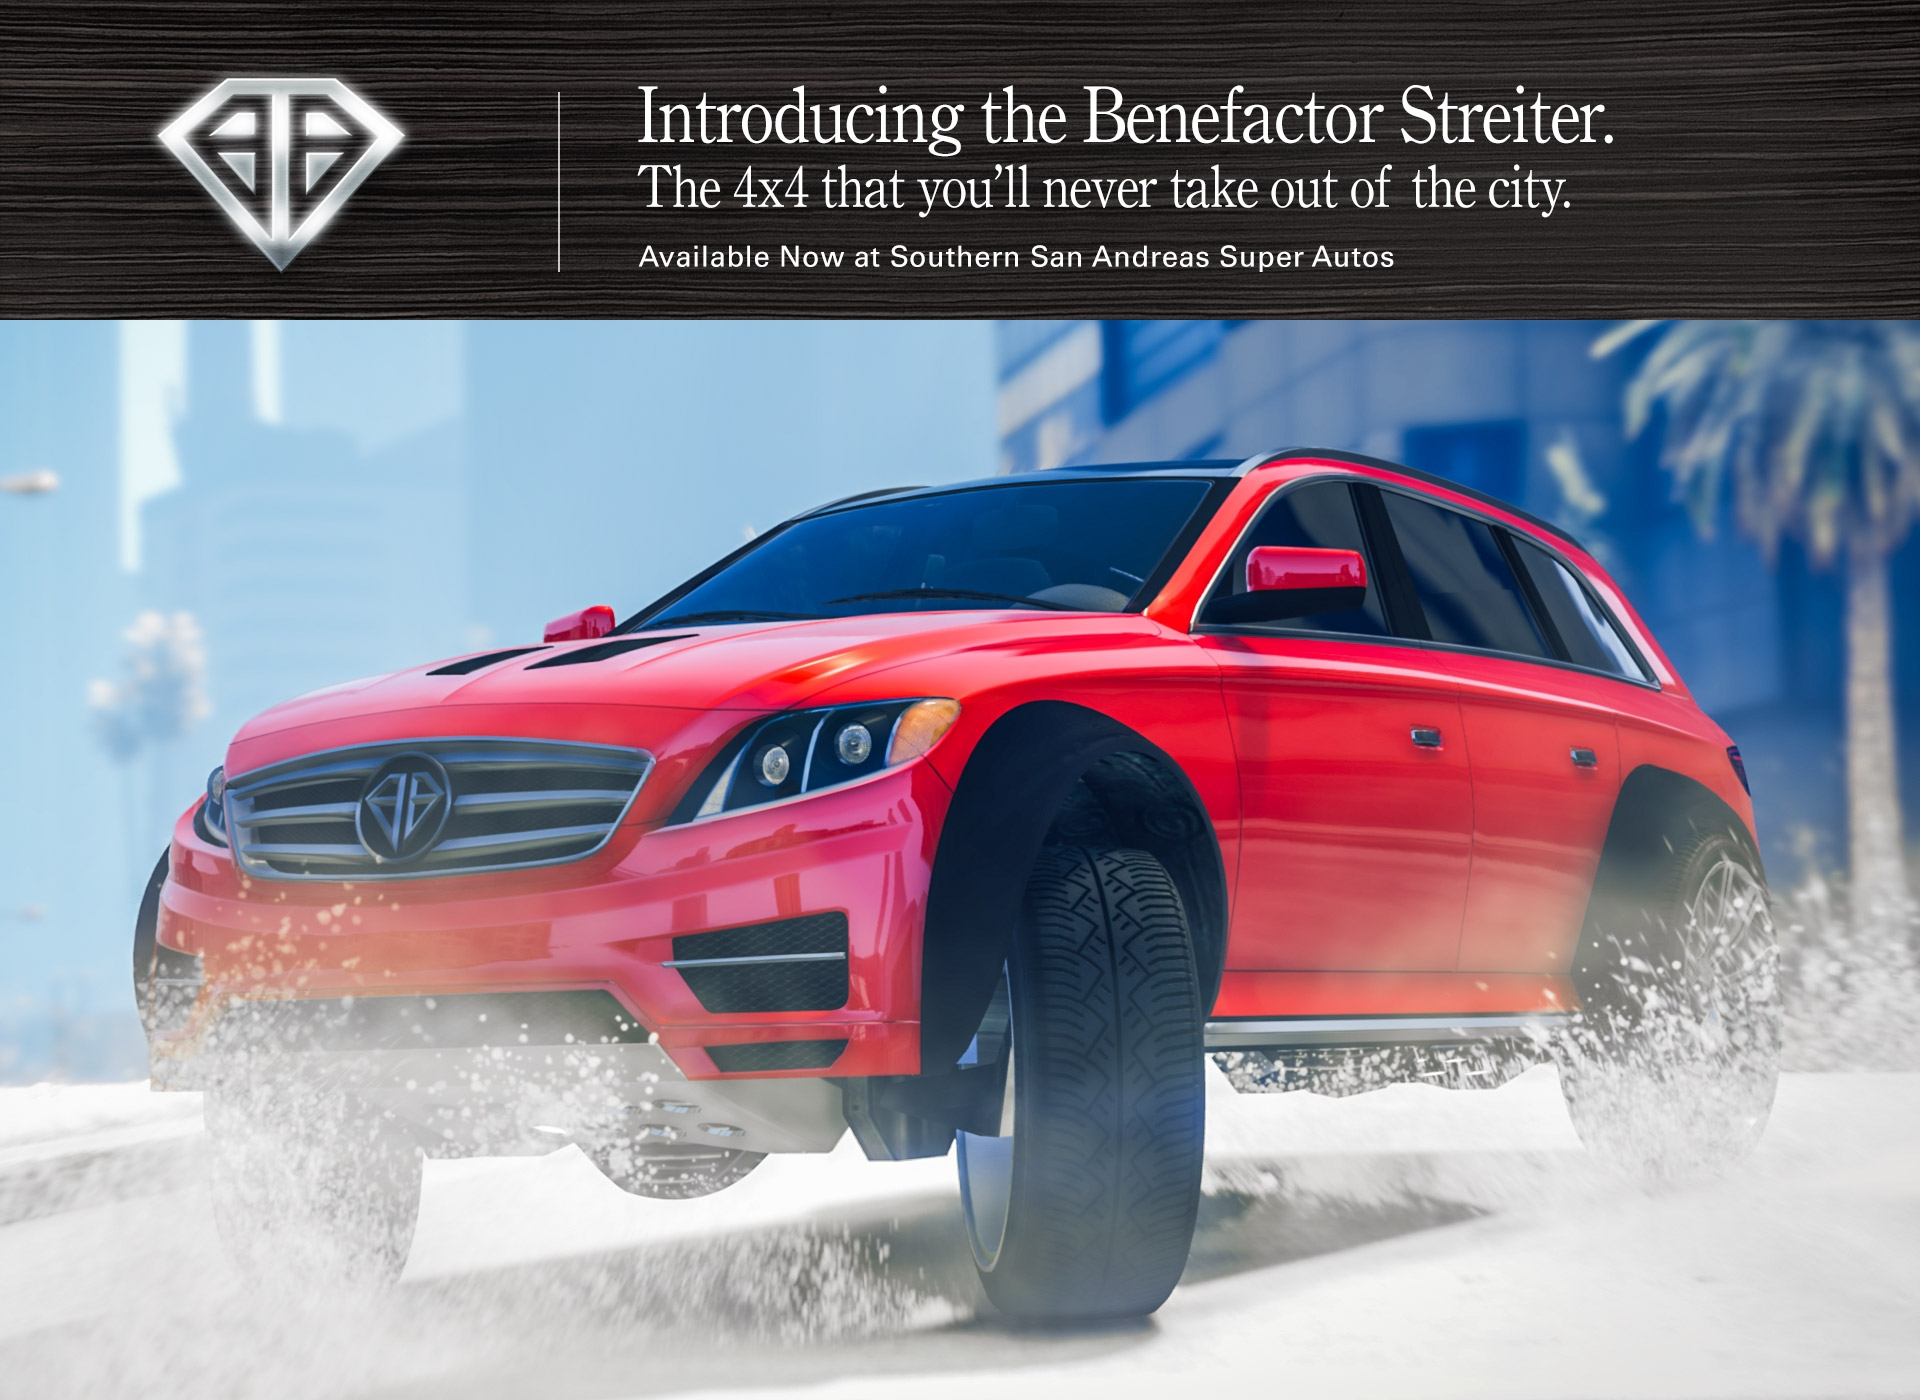 Gta 5 Christmas Gift 2019 GTA Online: New Benefactor Streiter, Snowfall and Upcoming Festive